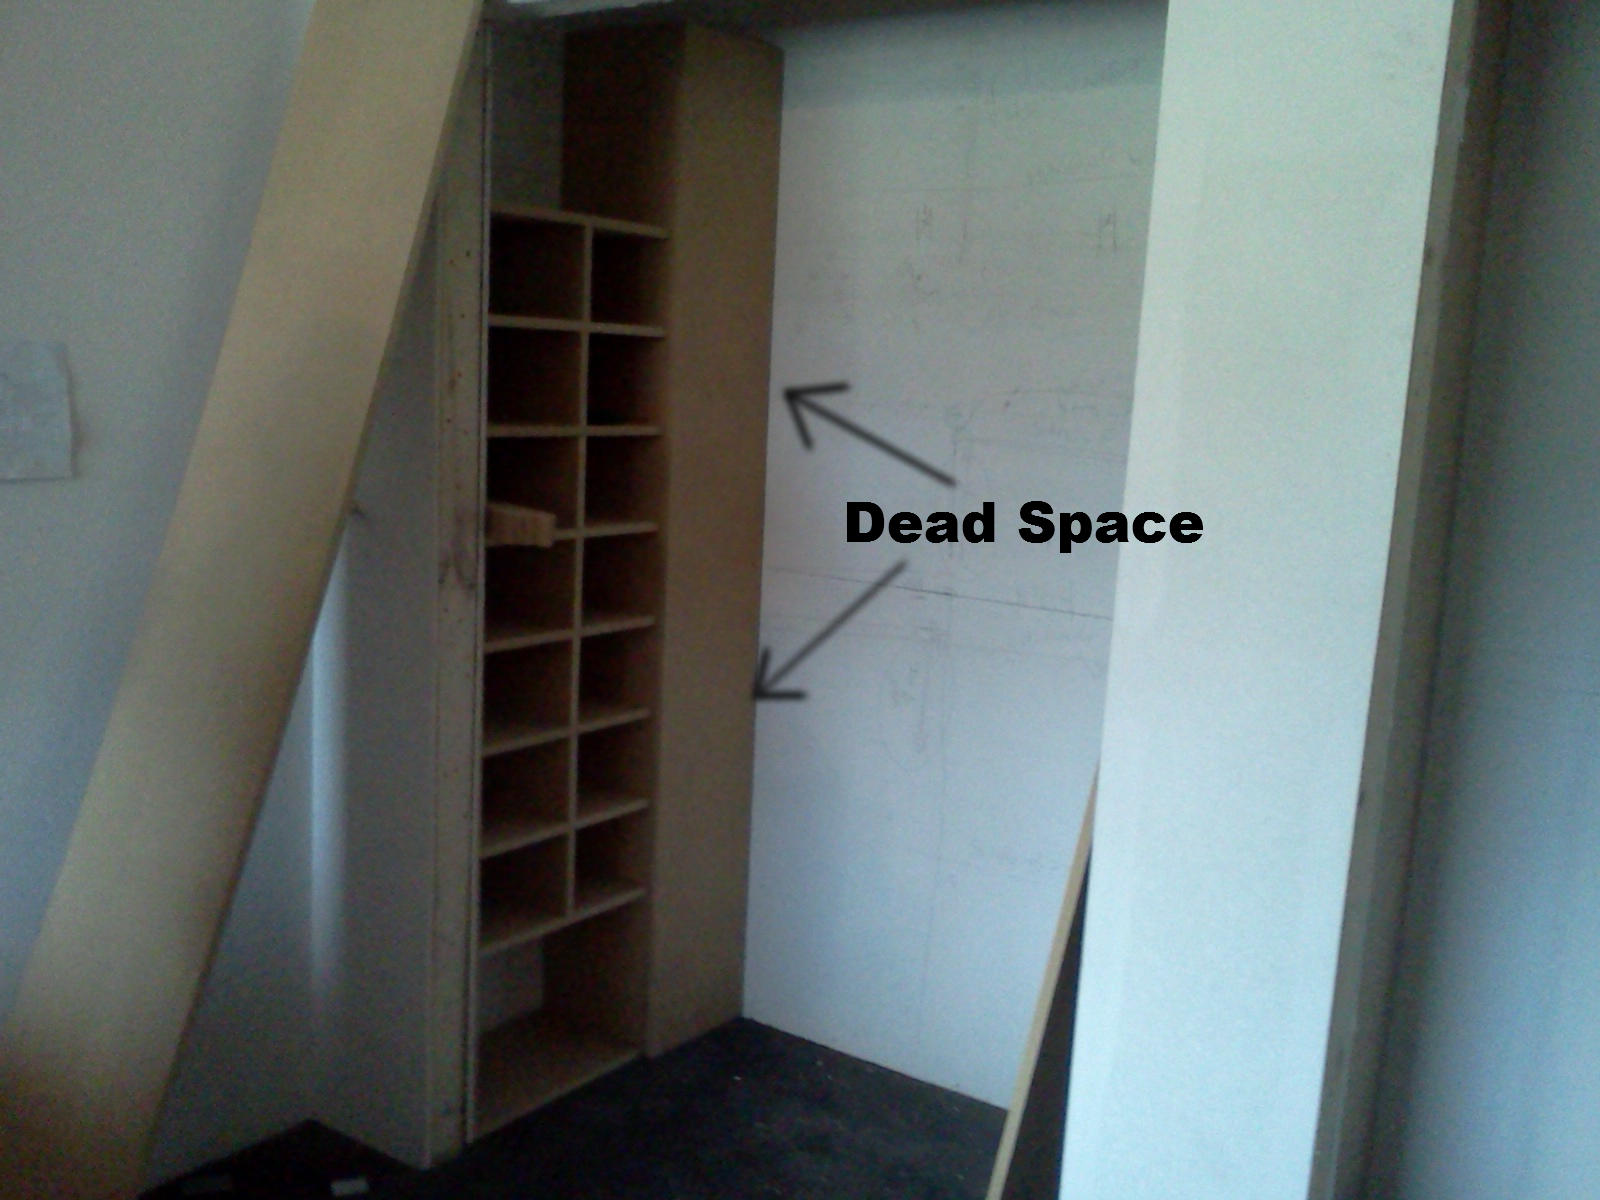 space organization blog don organizing s reach ideas t you decorating for closet when design have hgtv tips small walk a dont in saving